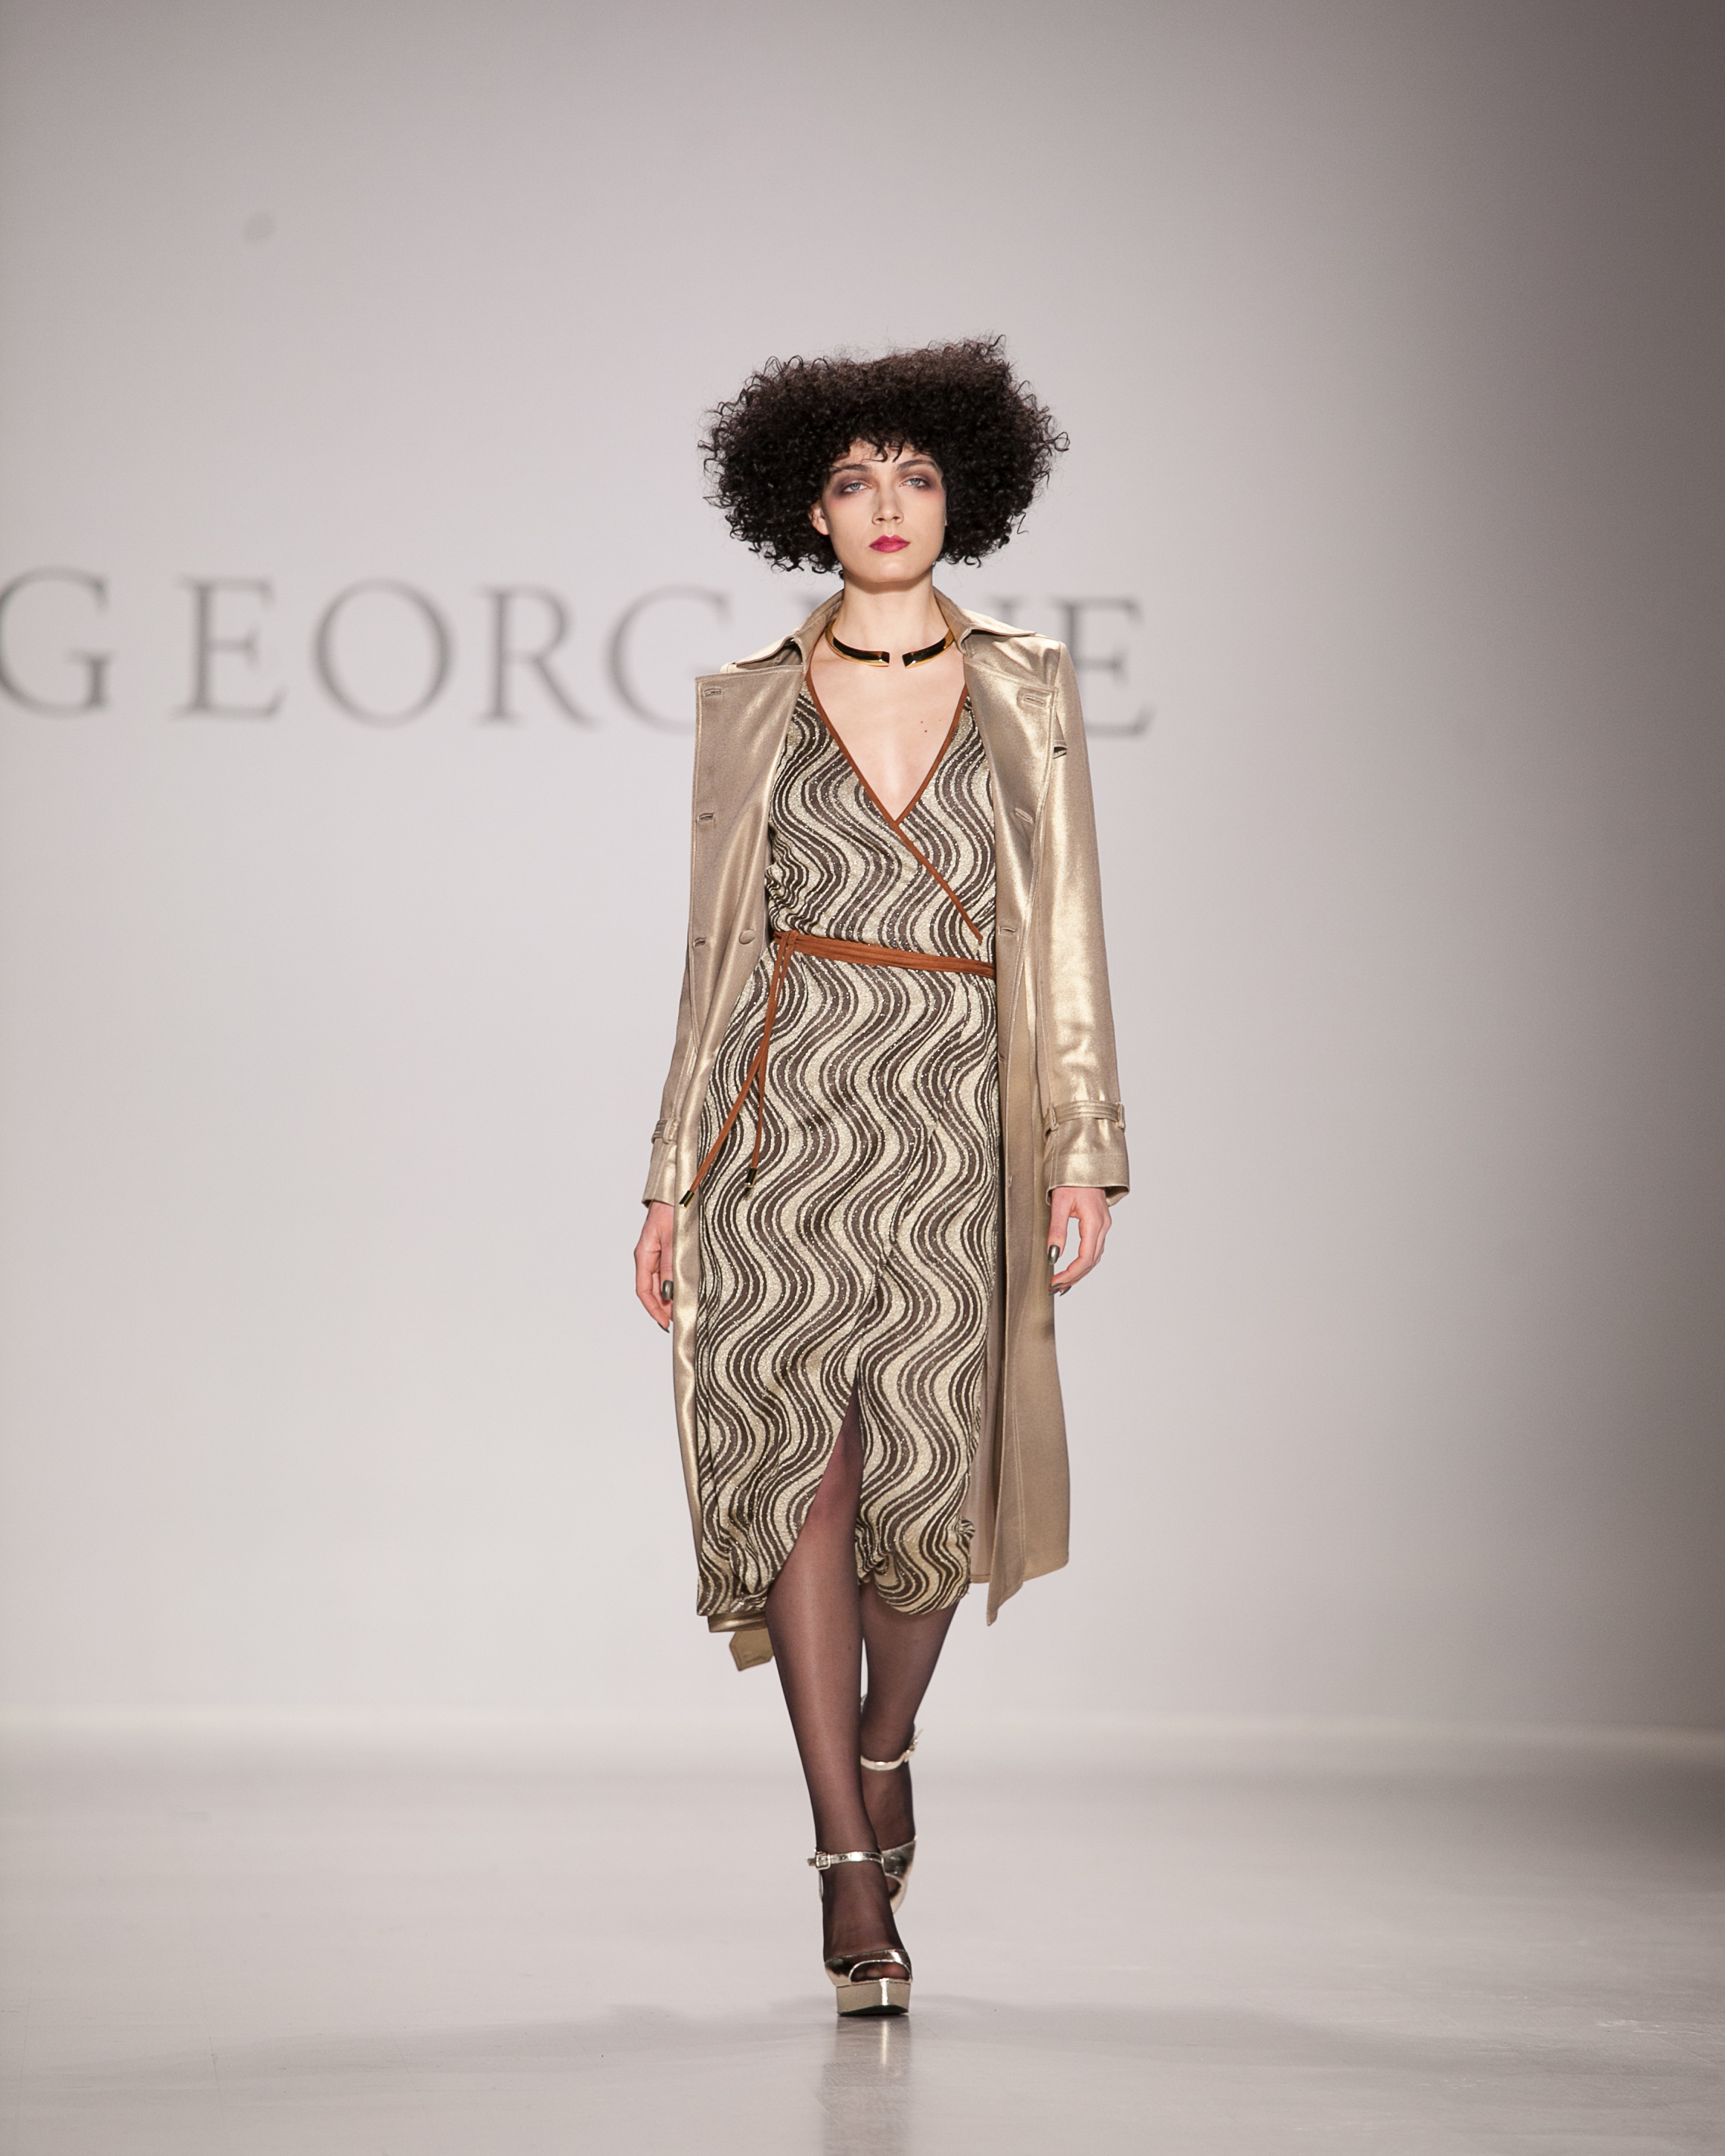 021-Georgine-New-York-Fashion-Week-Fall-Winter-2015-Shana-Schnur-Photography-021.jpg